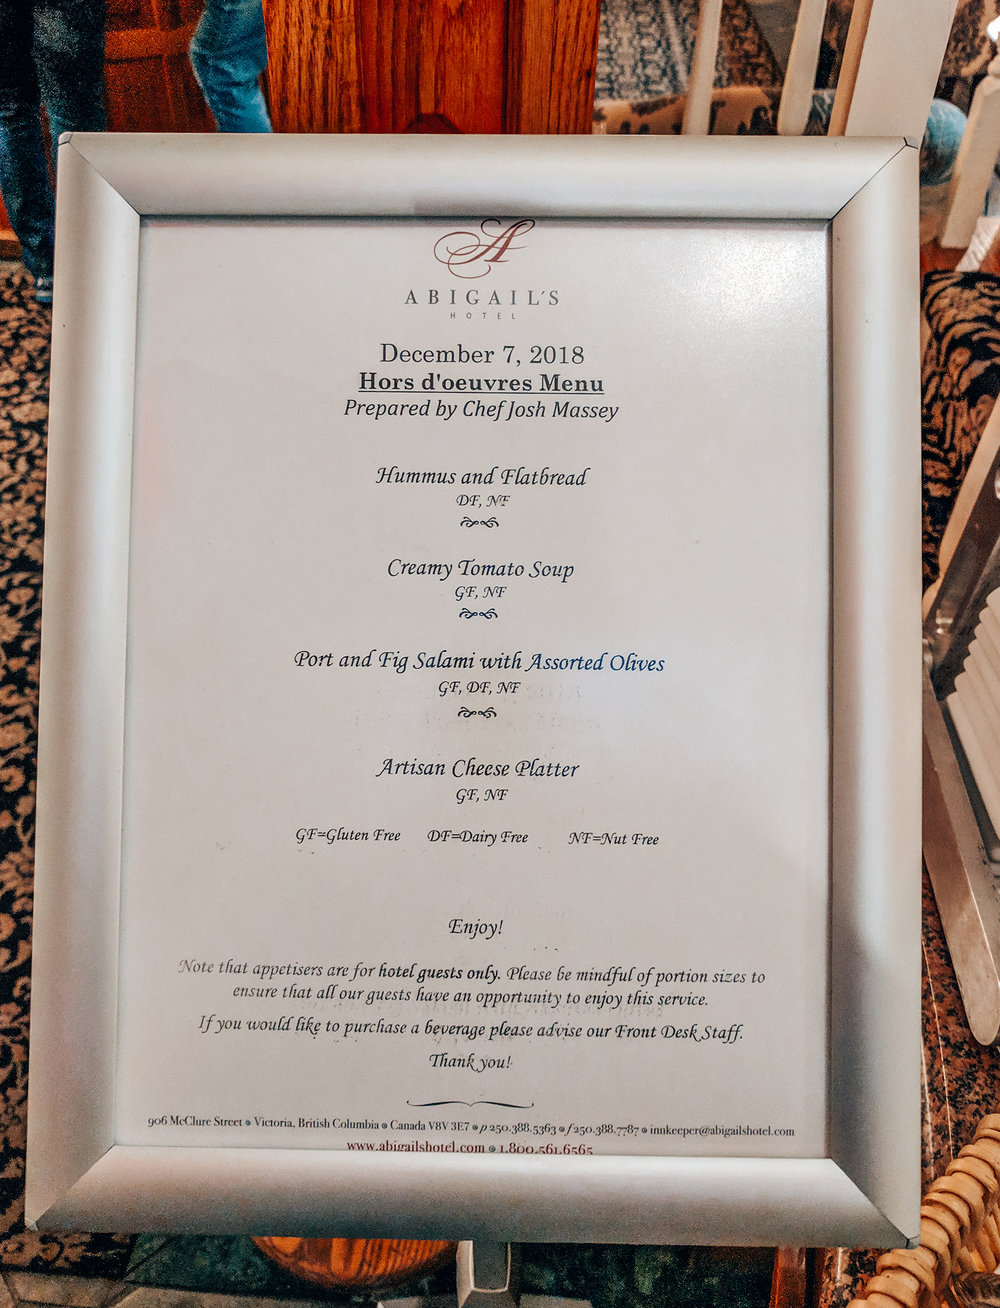 Menu for the 1st night appetizers